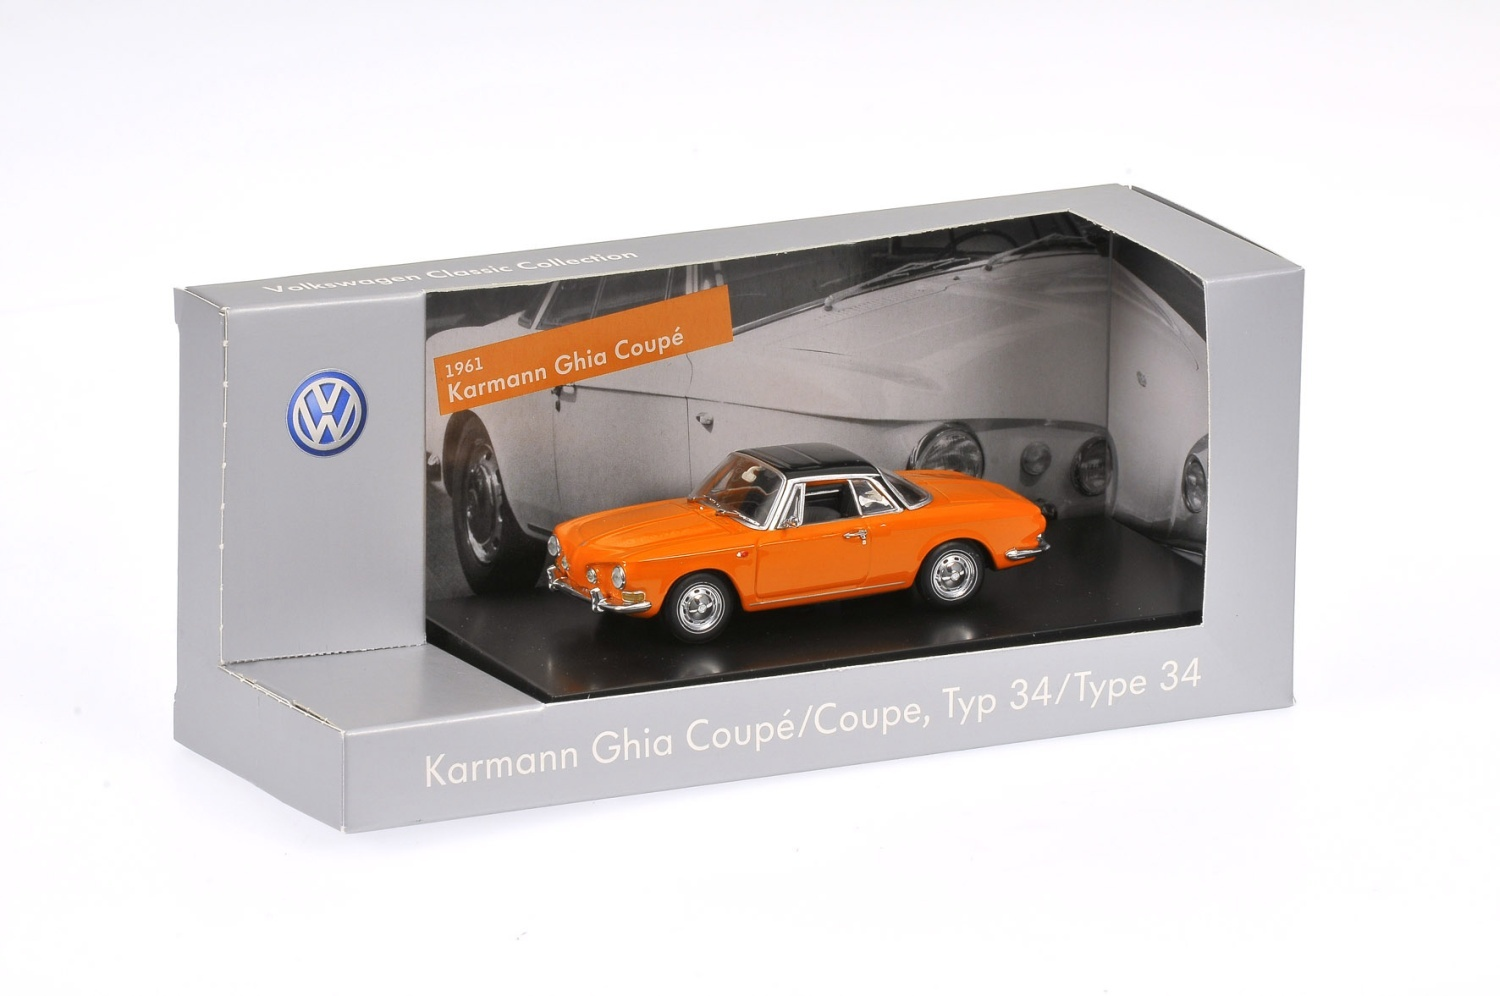 Karmann Ghia Coupé Tipo 34, escala 1:43 - Ítem2